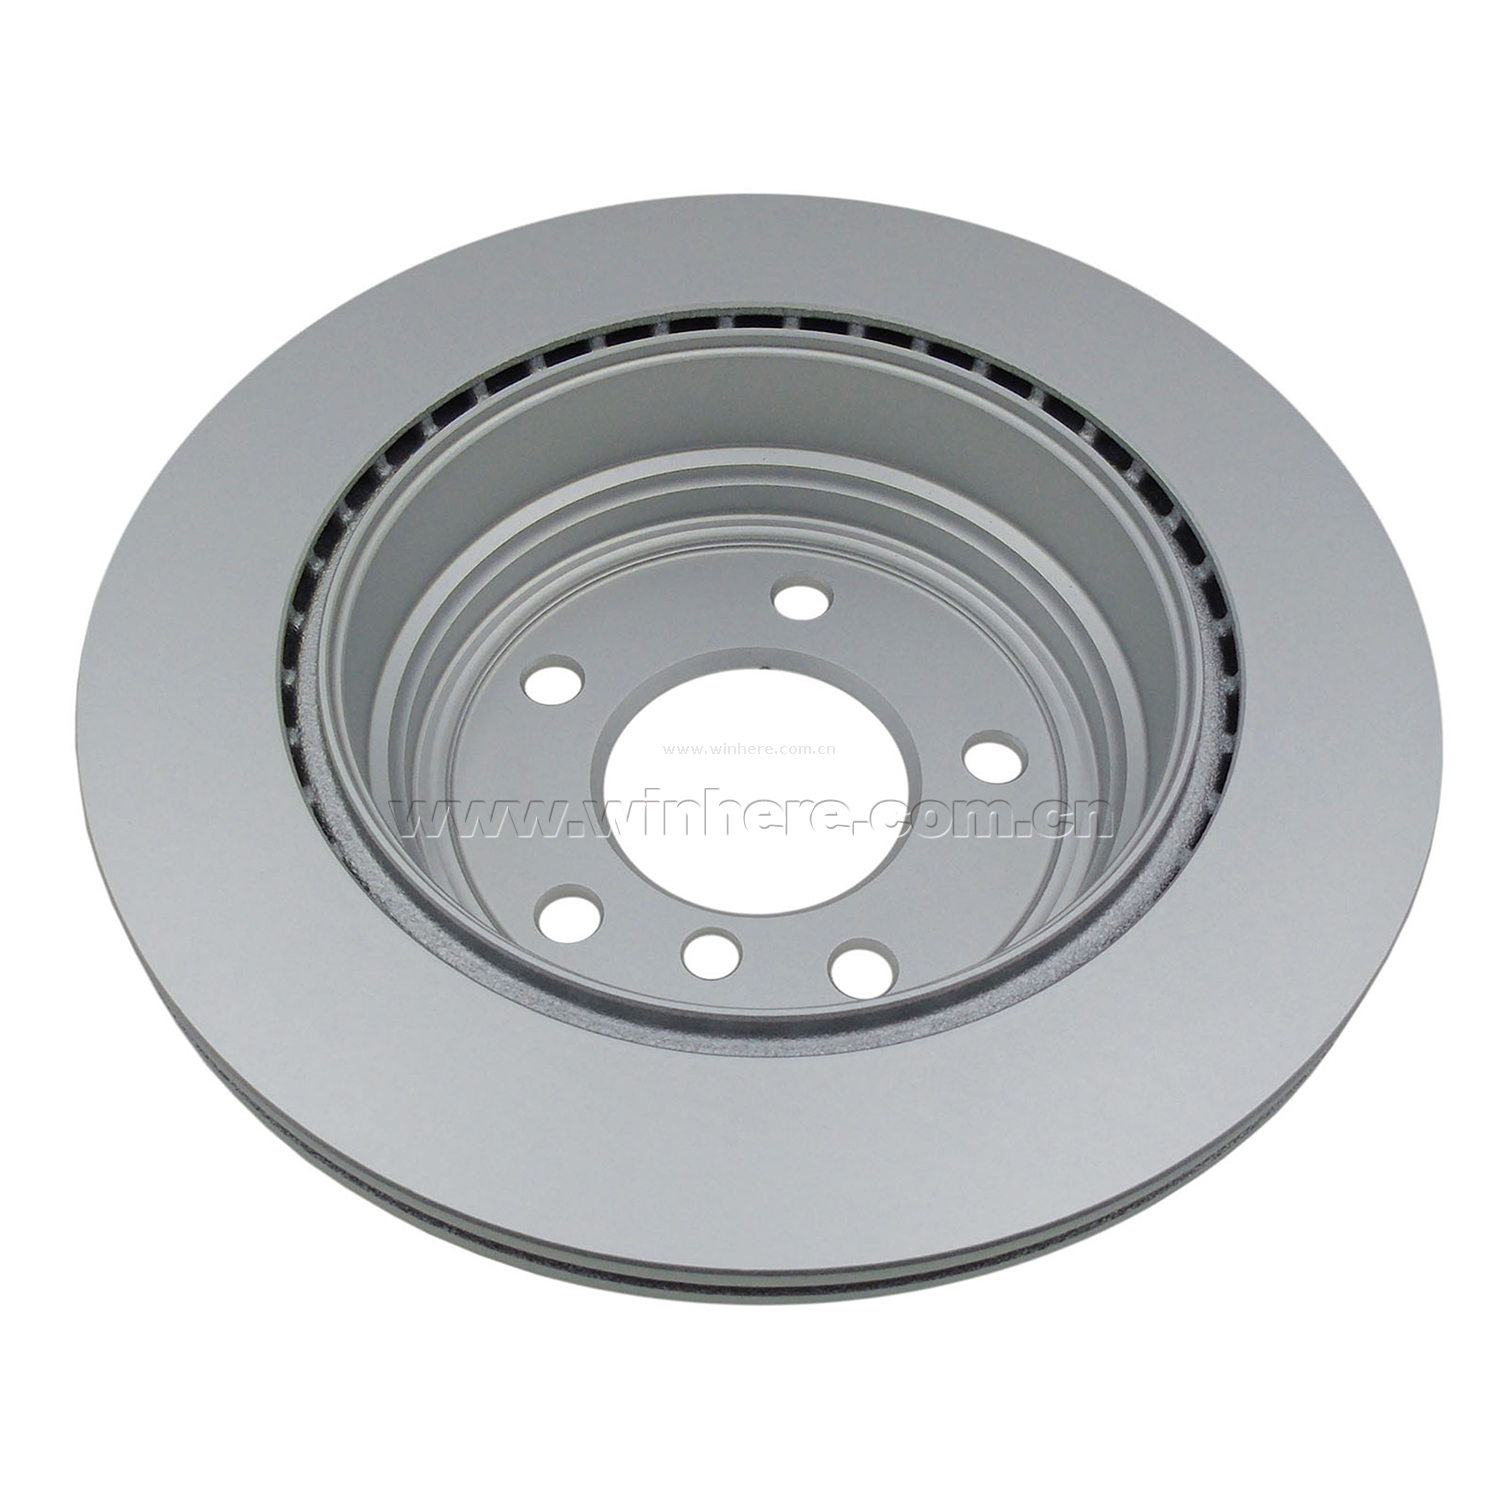 Commercial Vehicle Rear Brake Disc for BMW ECE R90